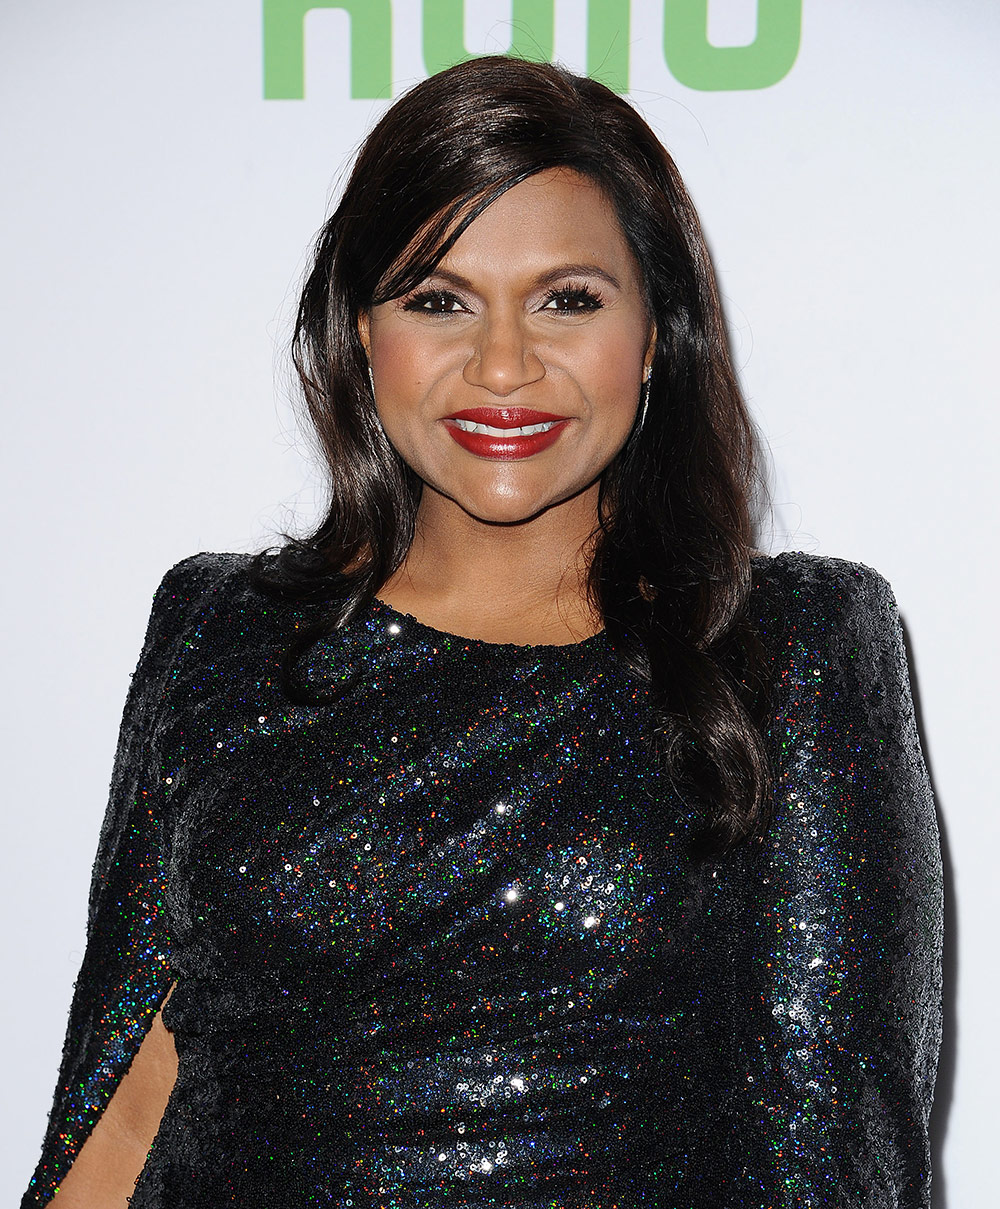 Mindy Kaling at Hulu Premiere